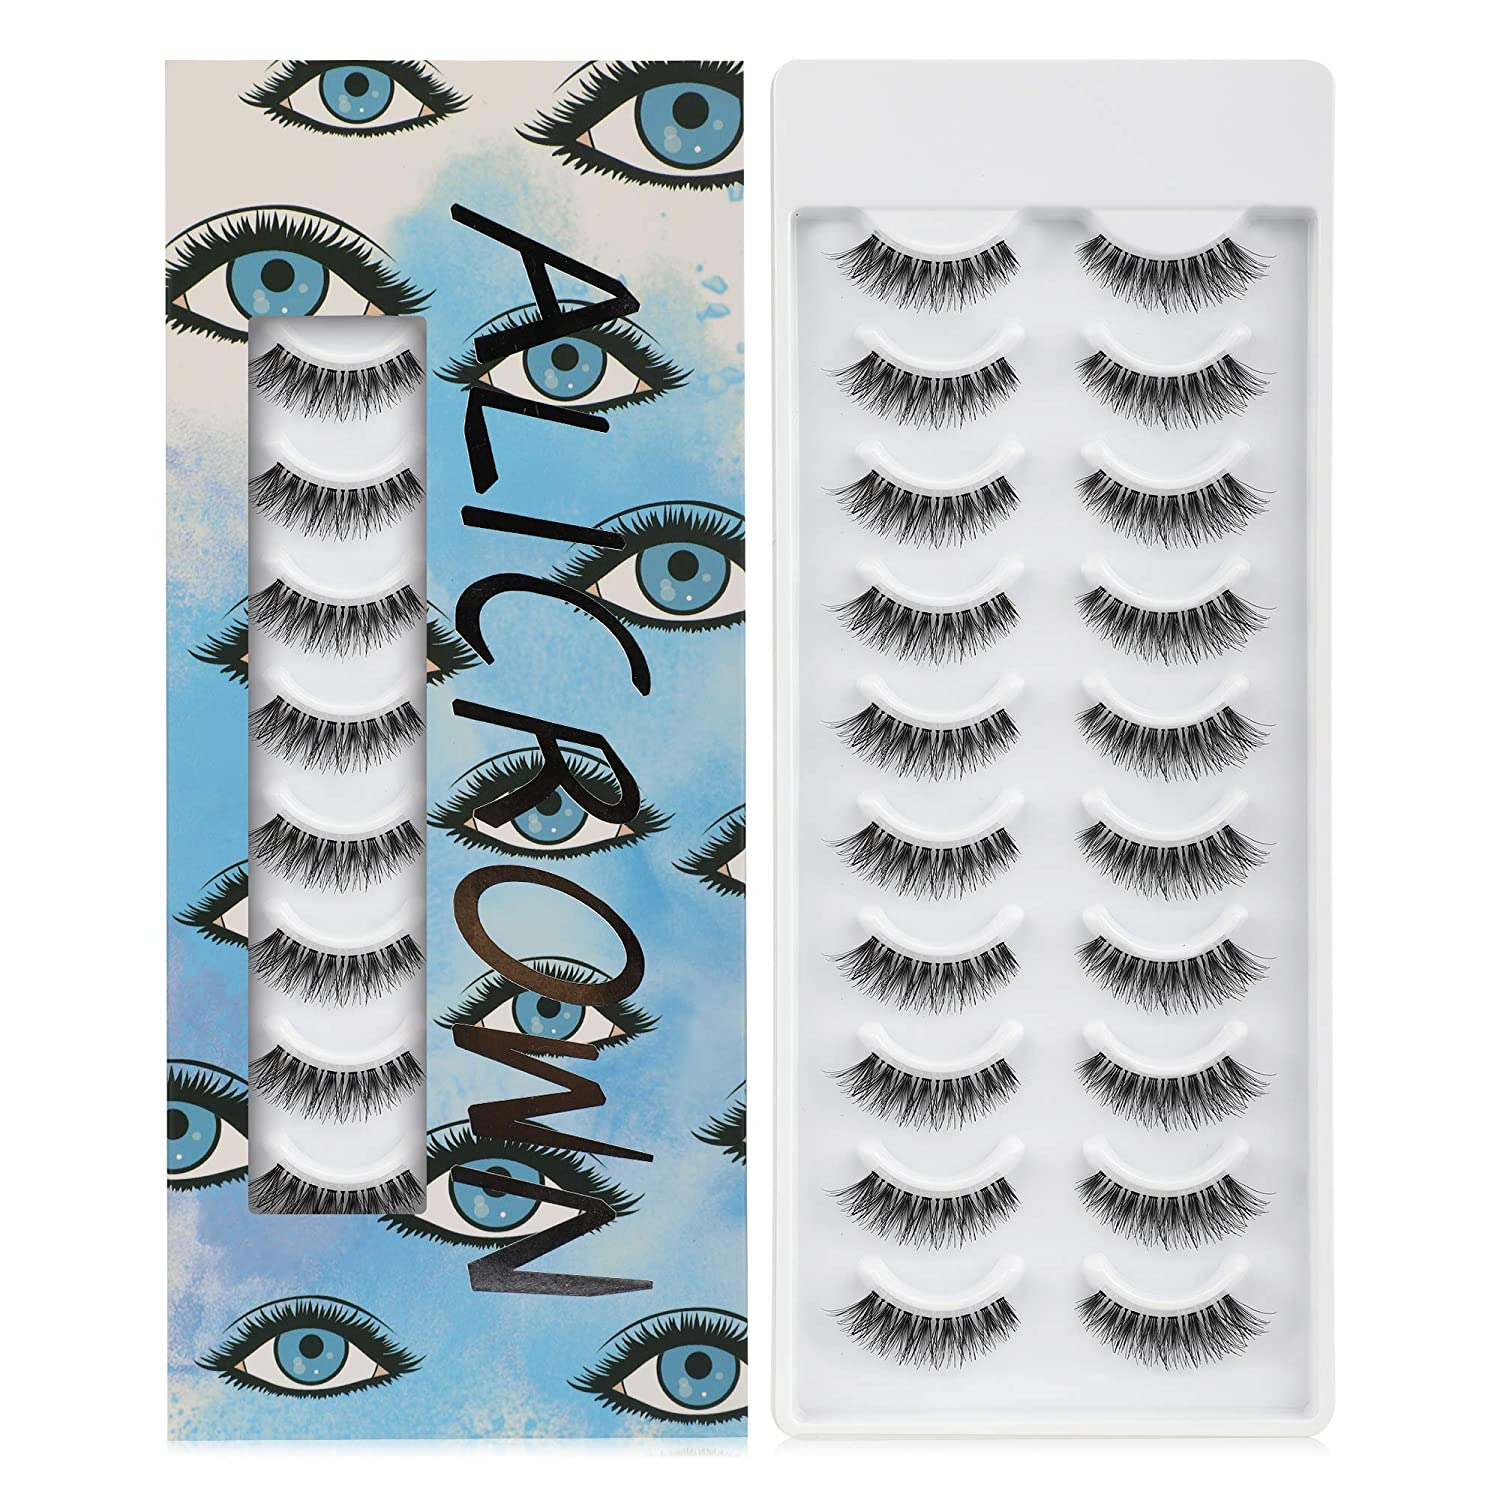 ALICROWN False Eyelashes sold out Outstanding Natural Handmade Lightweight Lashes-BLU